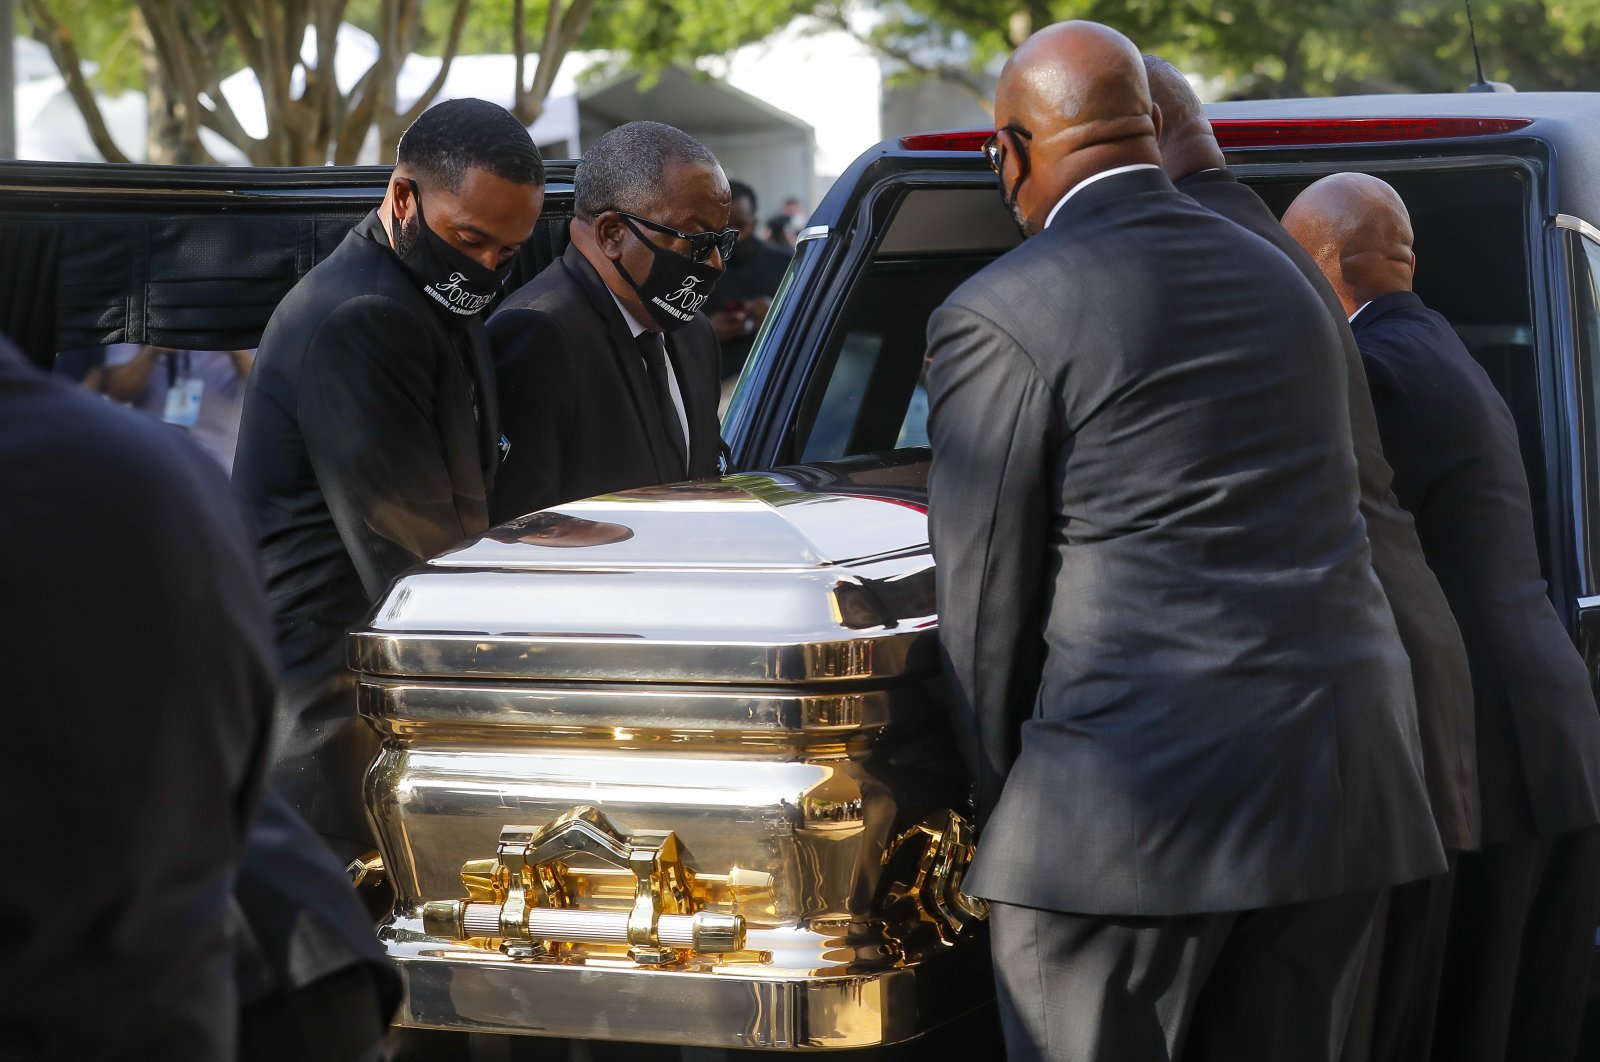 George Floyd's casket is loaded into a hearse after being brought out of The Fountain of Praise church following a public visitation, in Houston, Texas, U.S., June 8, 2020. (EPA-EFE Photo)